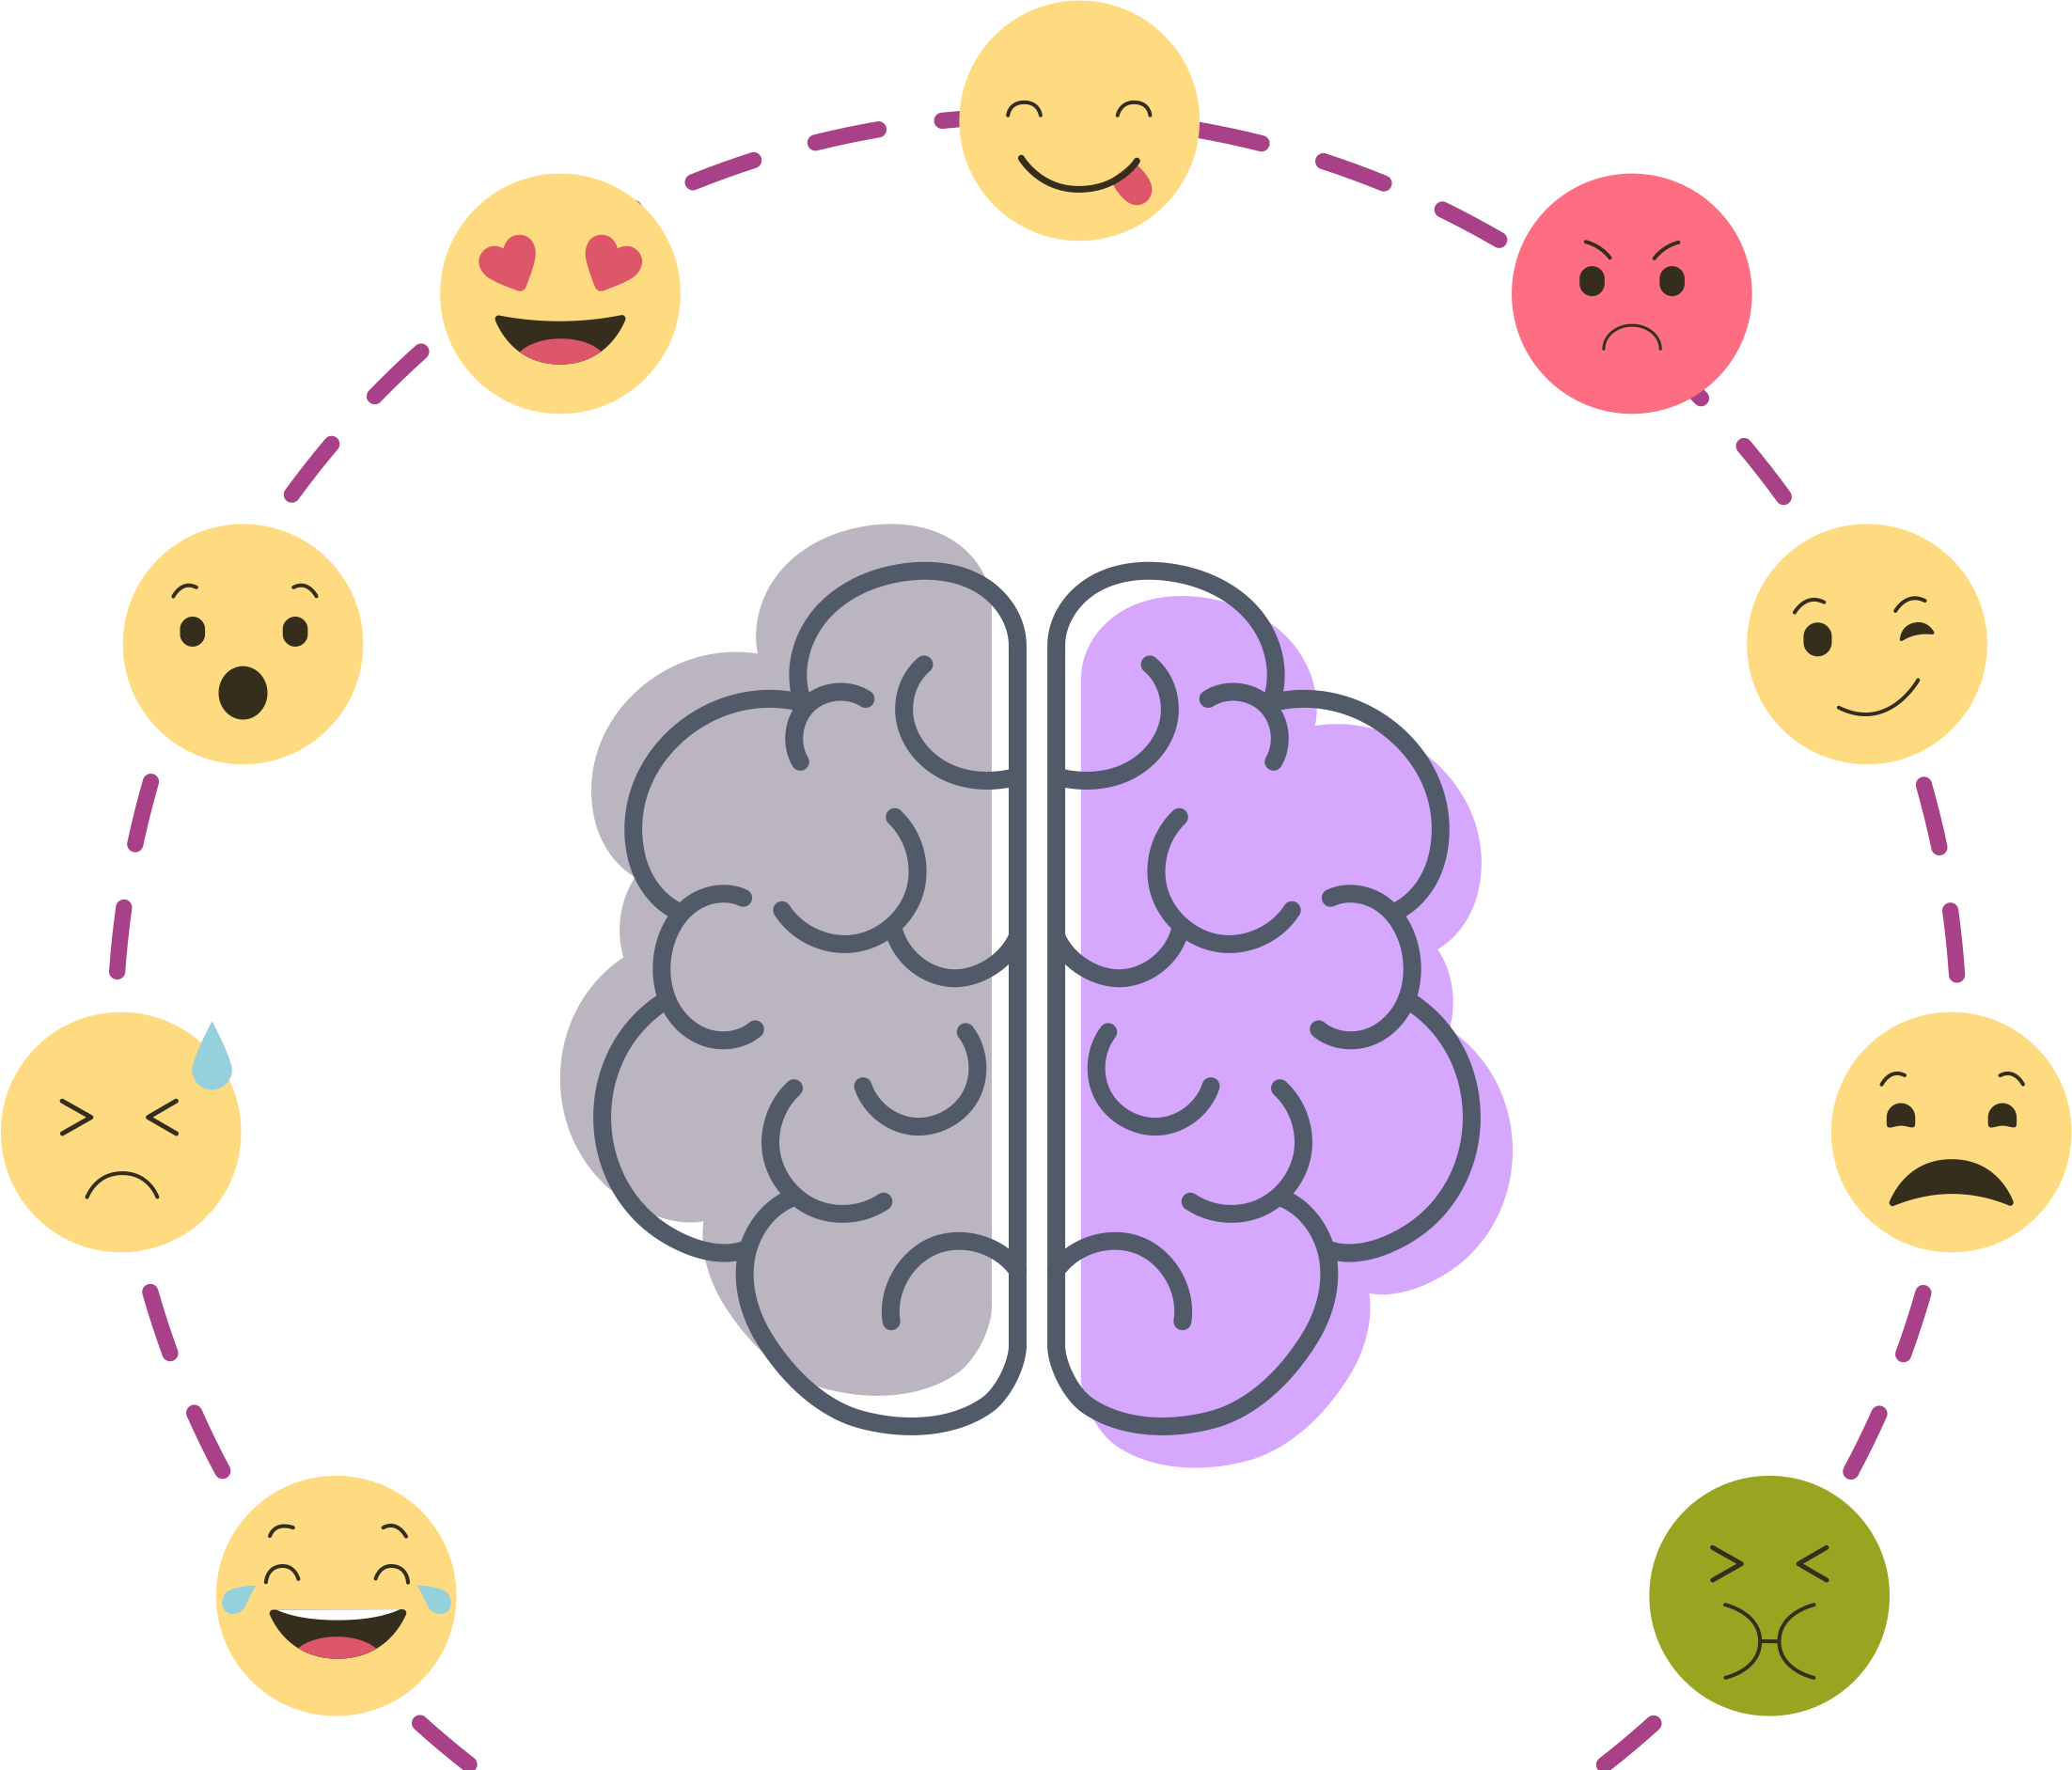 Mood and perception enhance clipart graphic transparent stock The design of emotions and emotional intelligence - UX Collective graphic transparent stock